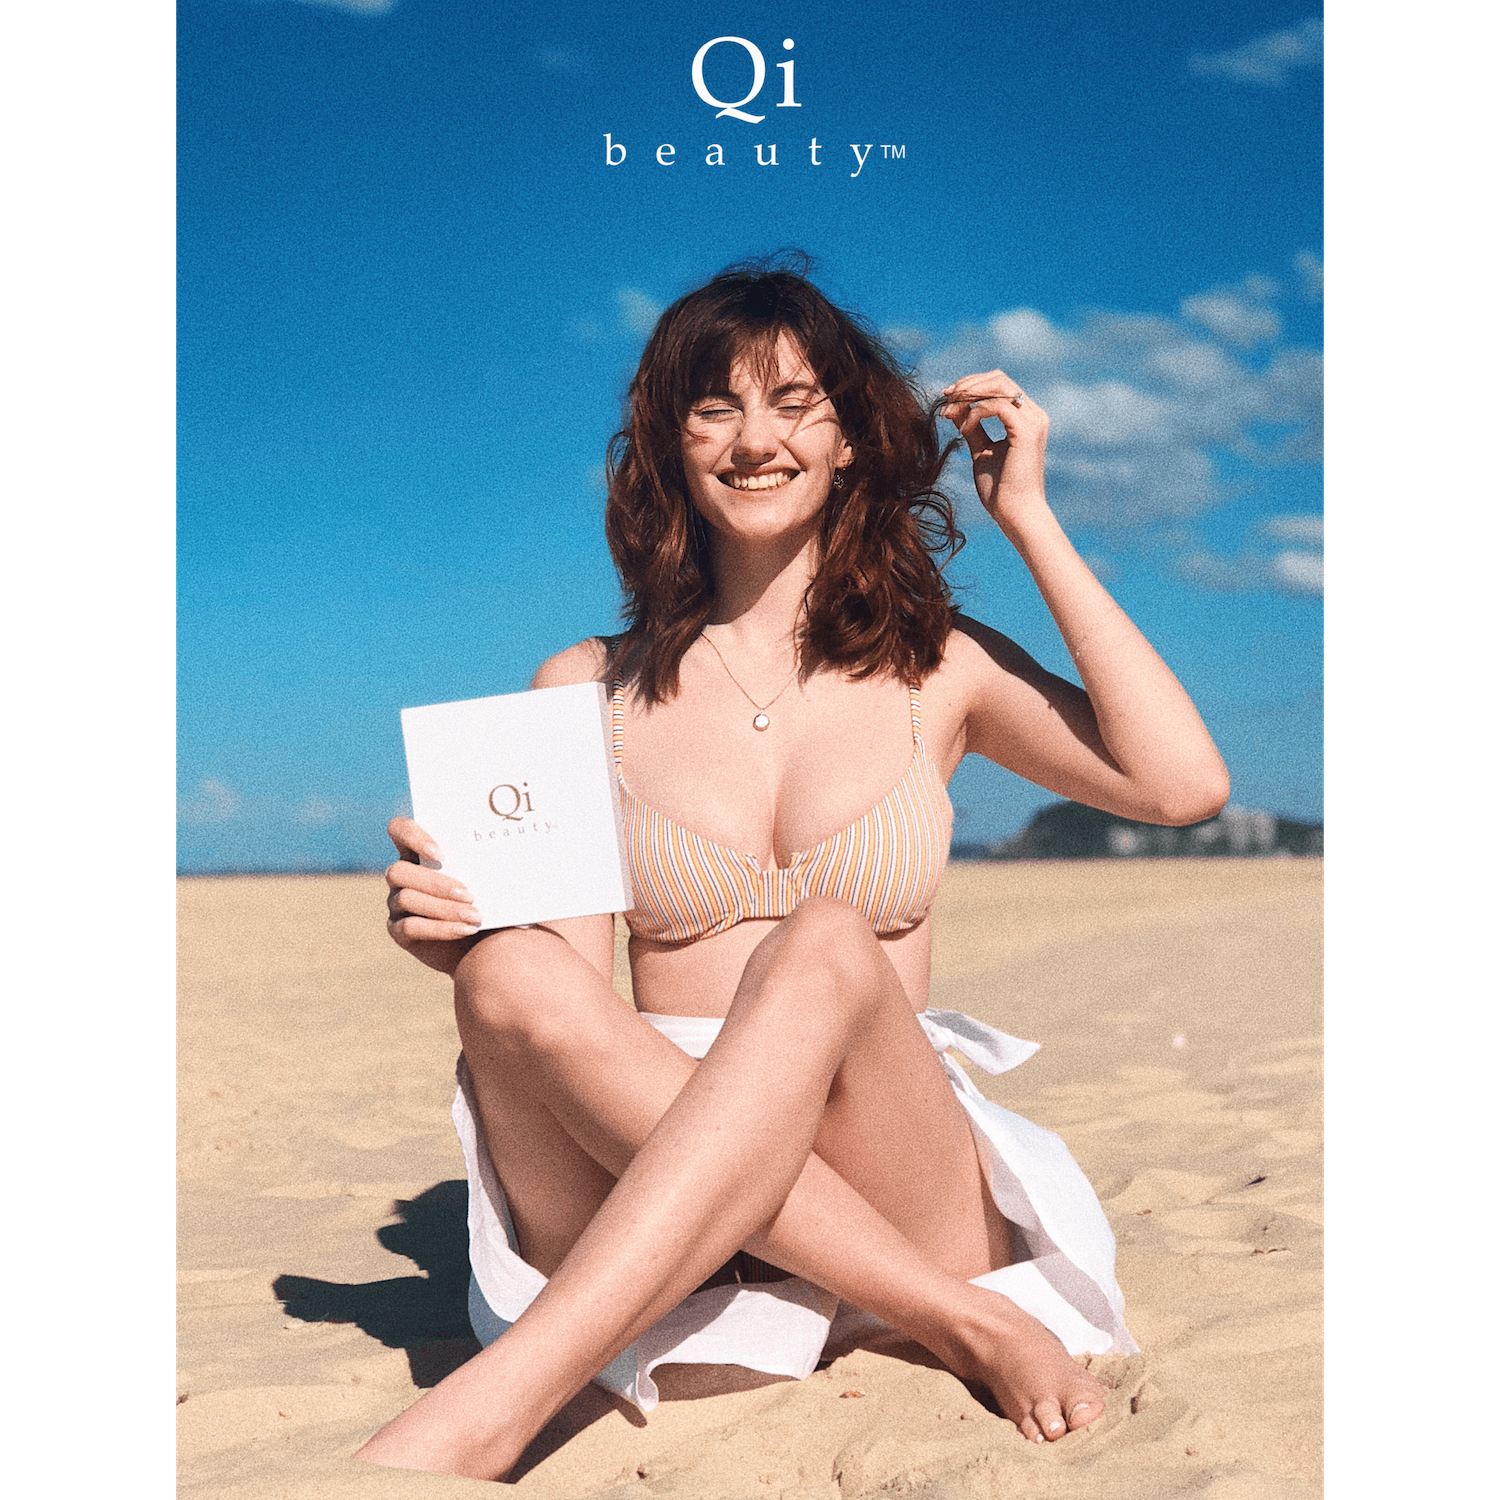 Bella Ryan for Qi beauty #MyQi with the Qi beauty Home Kit